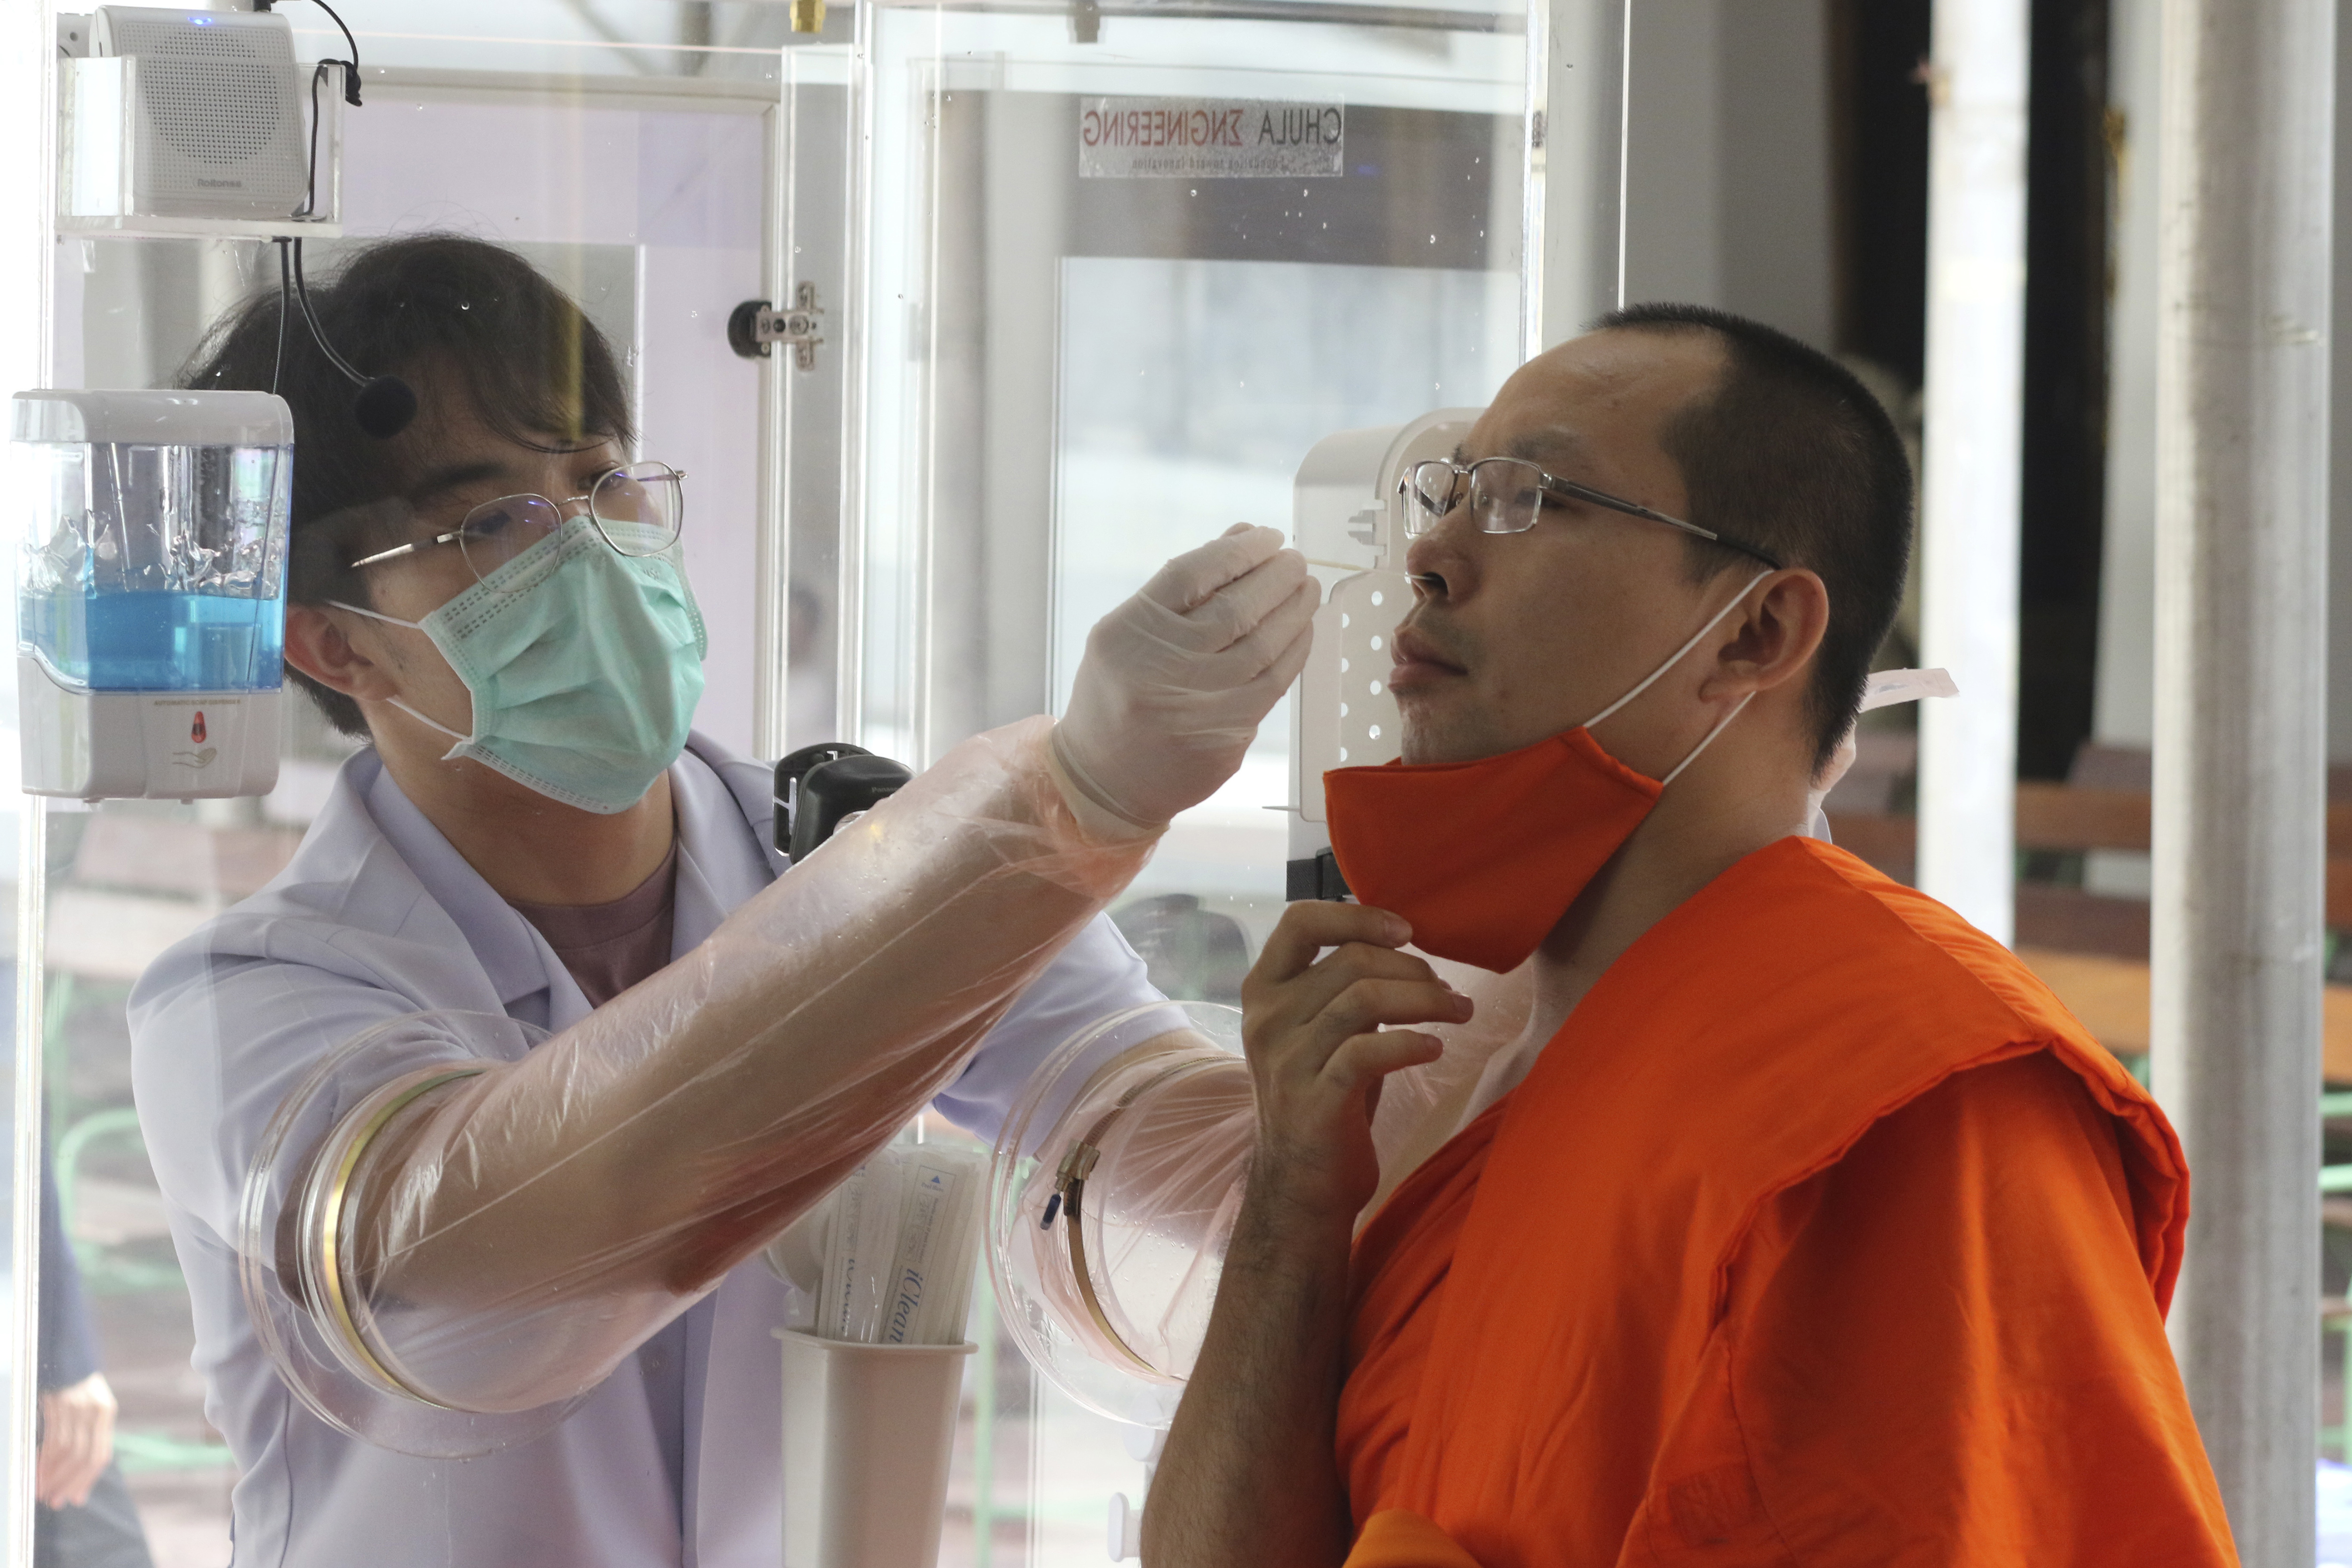 Health workers collect a nasal swab sample from a Buddhist monk to test for the coronavirus at the Wat Pho temple in Bangkok, Thailand, Saturday, May 30, 2020. (AP Photo/Sarayuth Jojaiharn))